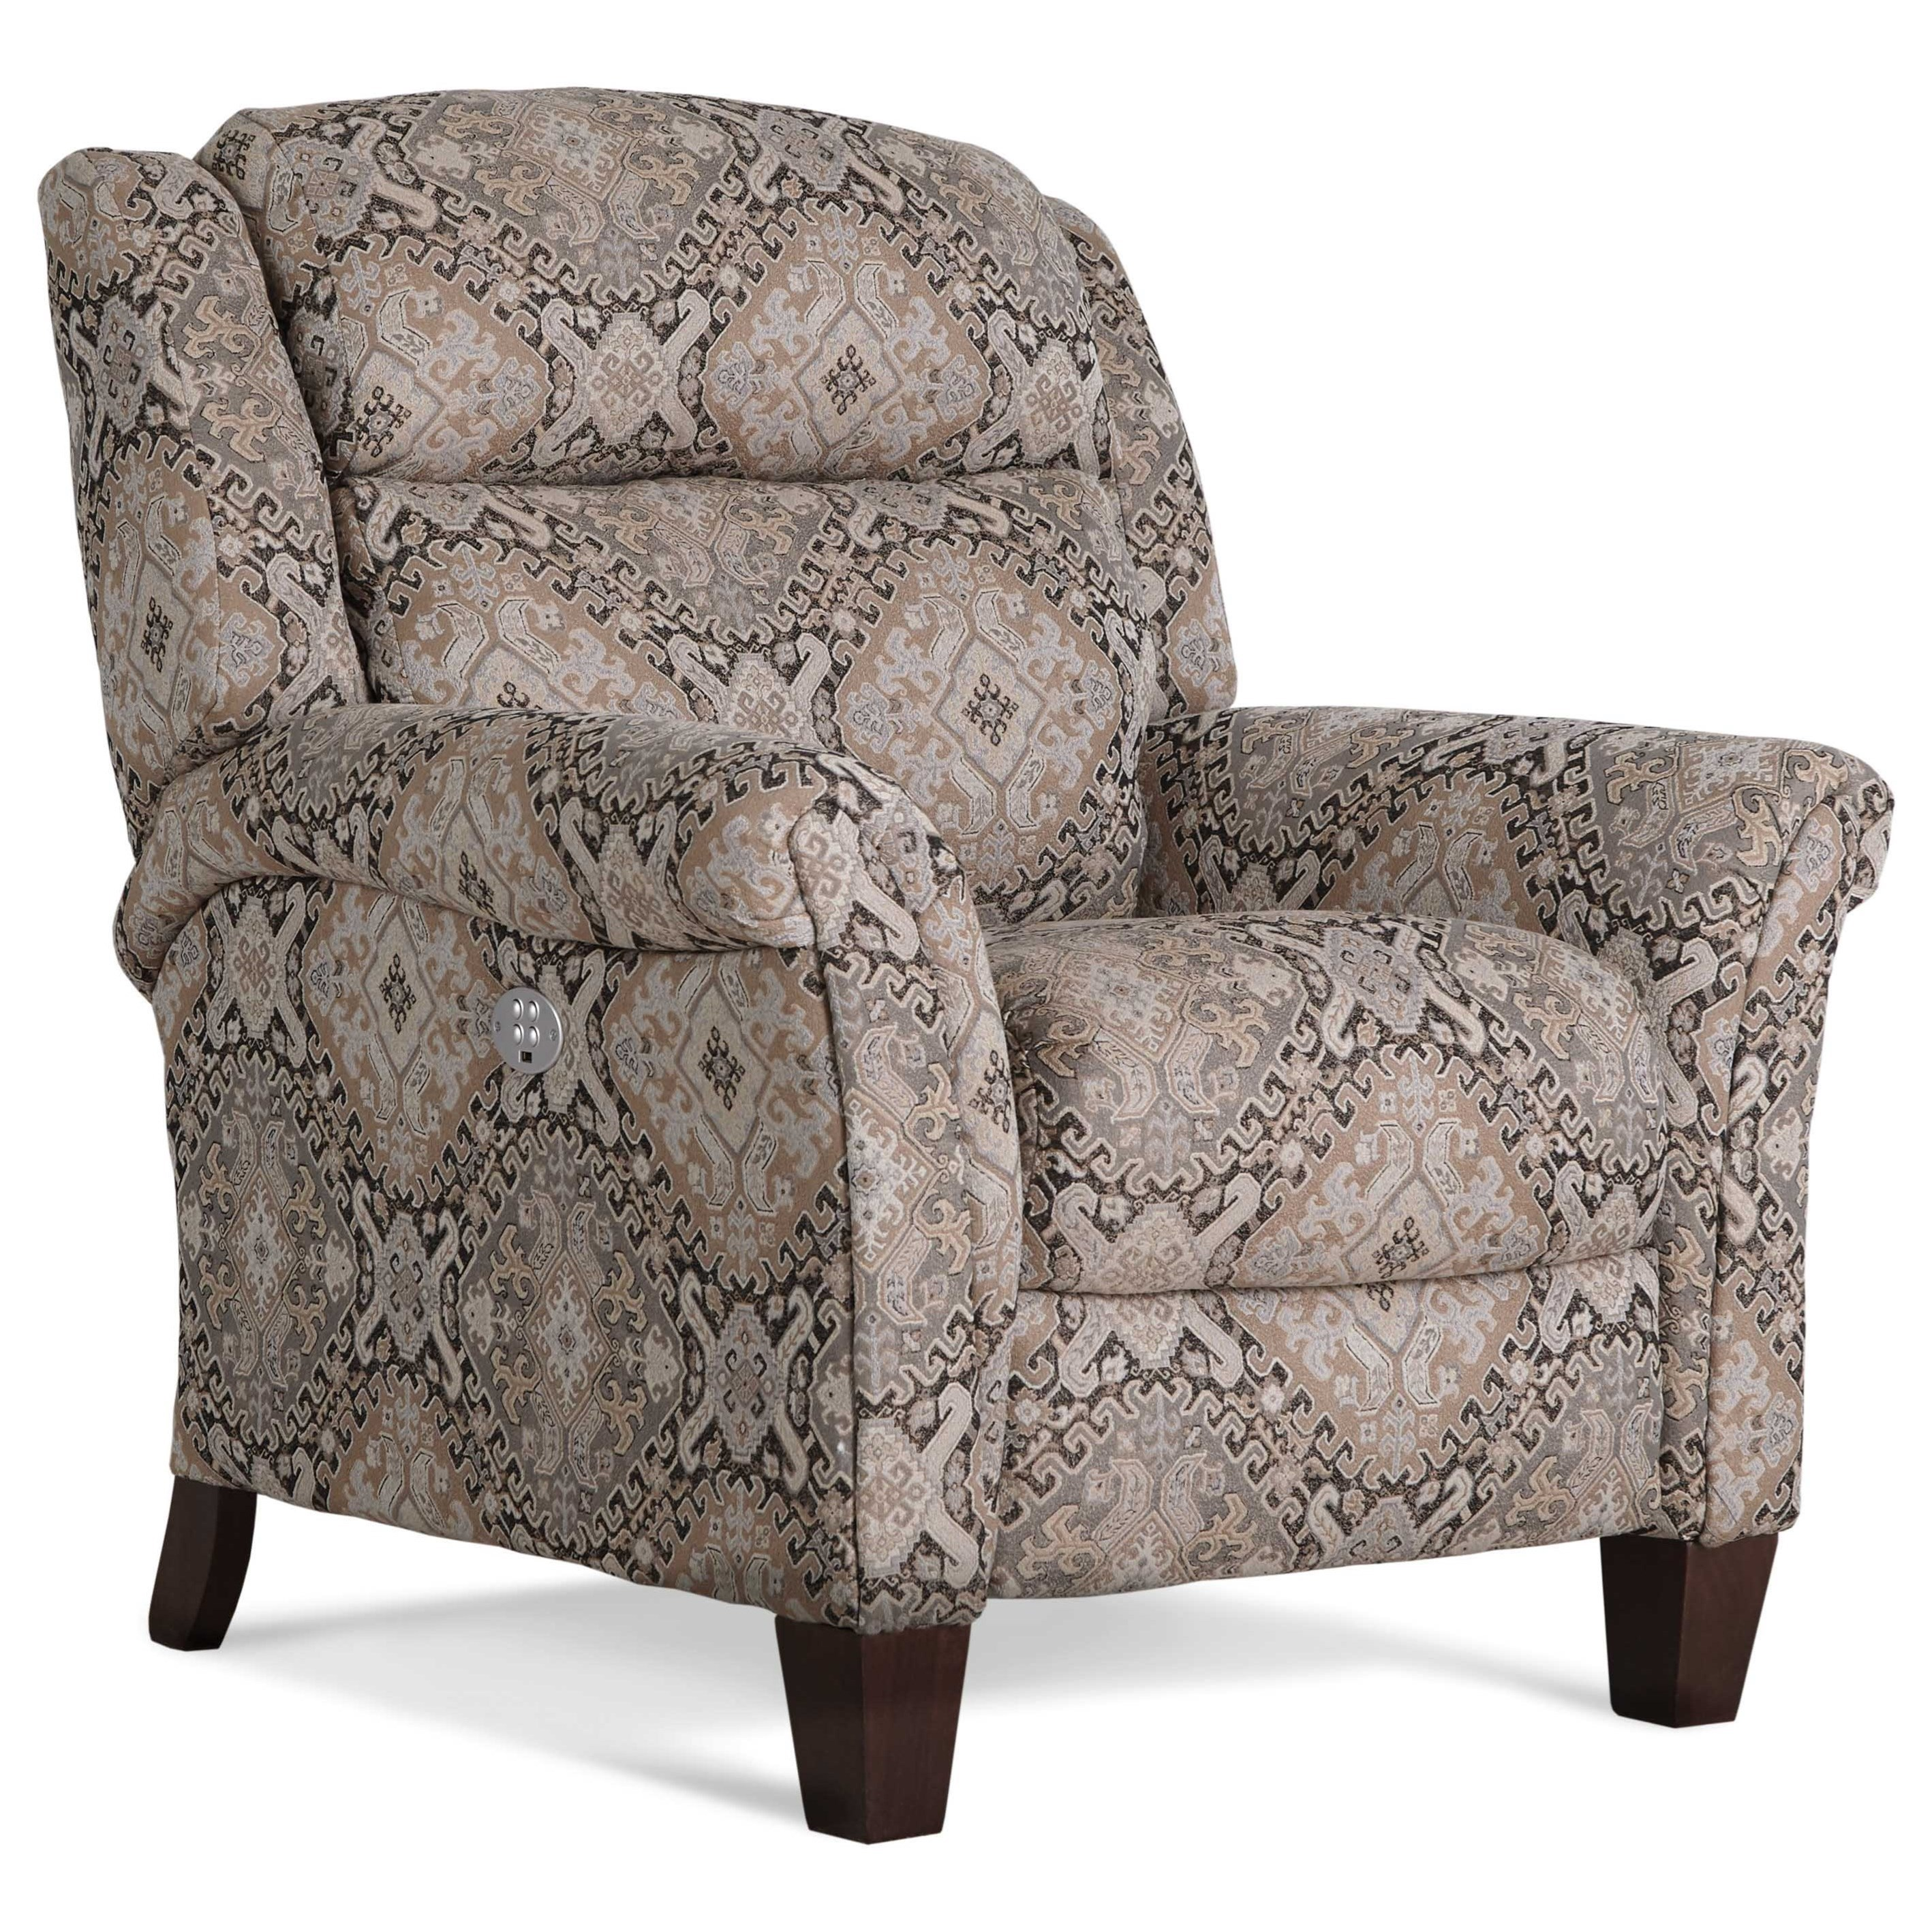 Pow Wow High Leg Recliner by Southern Motion at Home Furnishings Direct